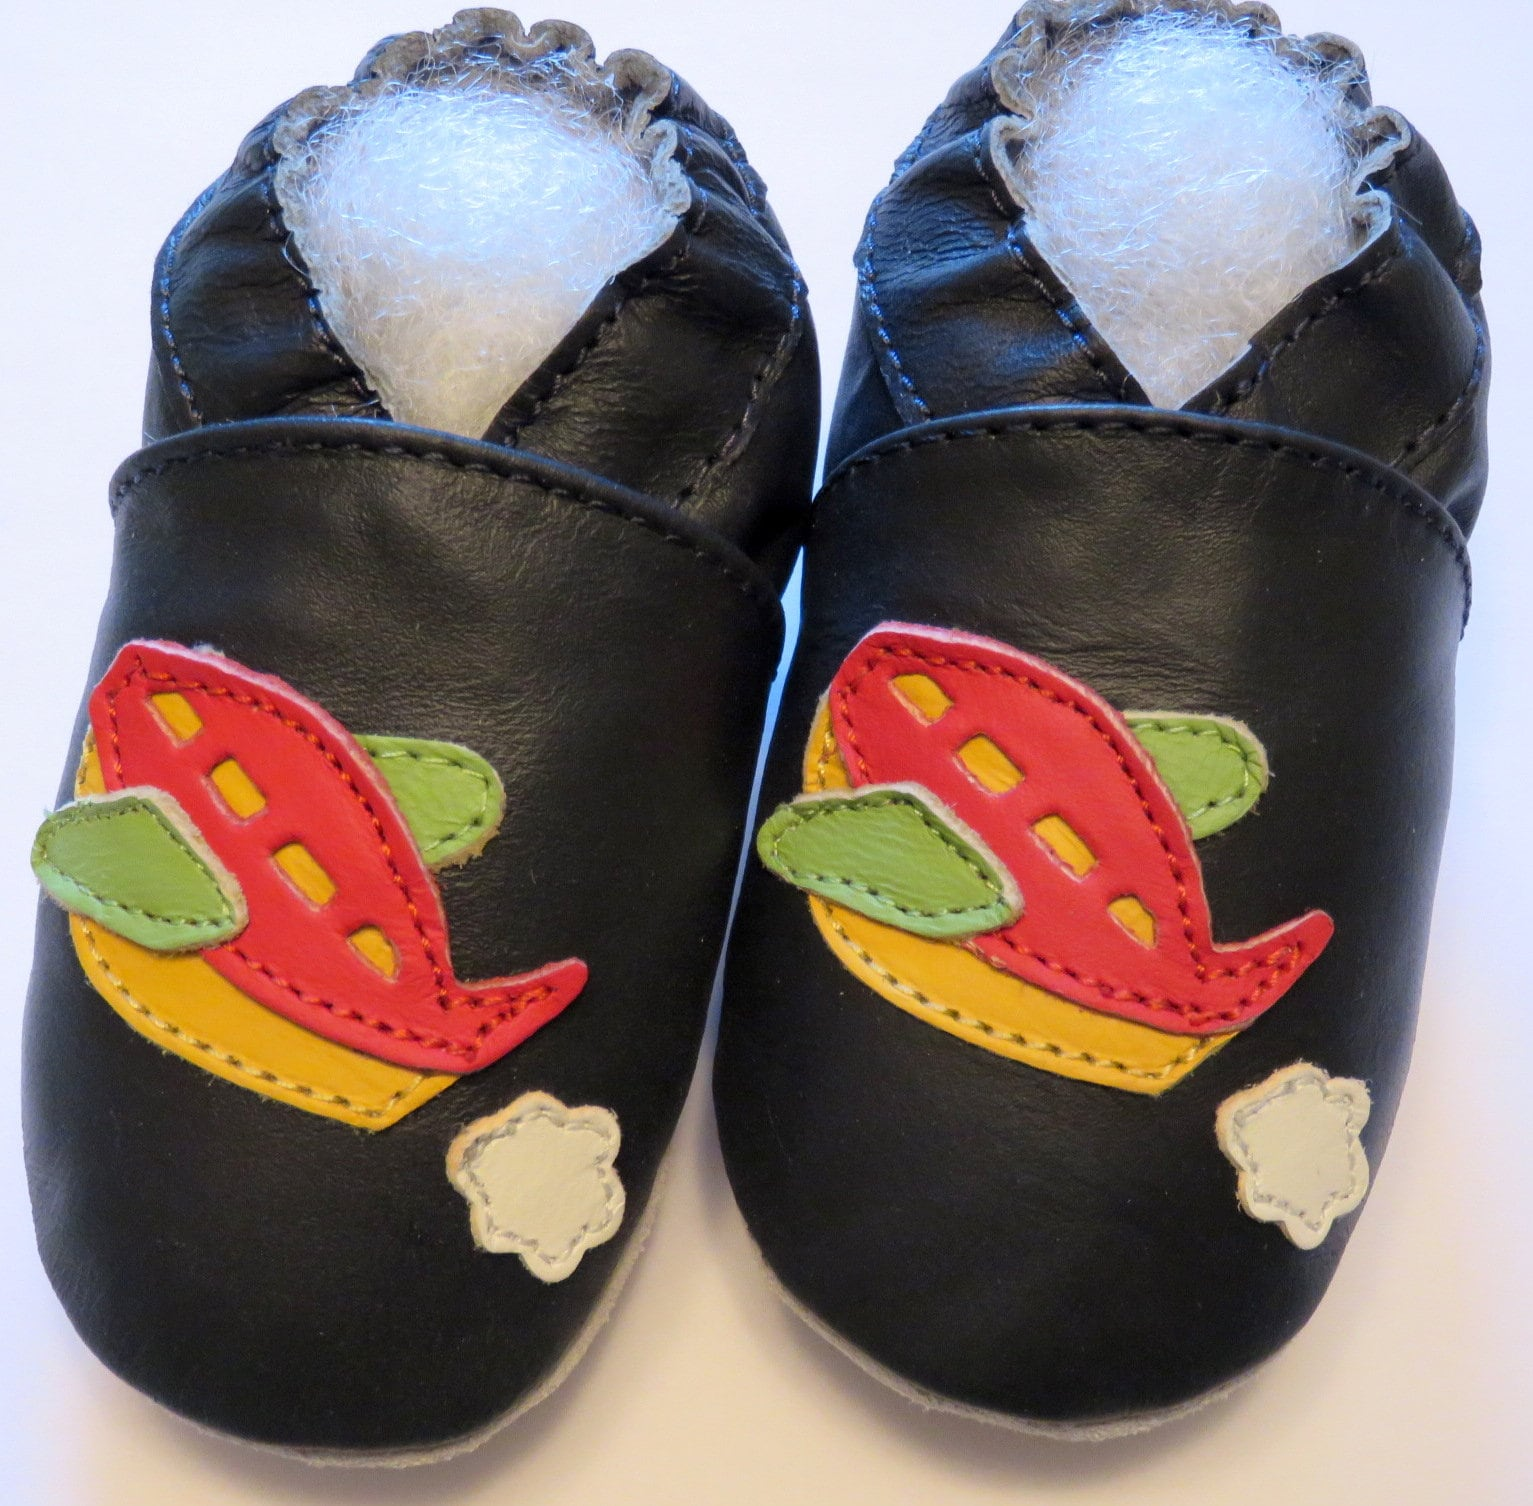 Leder 24 Bimboms Soft Sole Leather Baby Shoes 24 36m Airplane Slippers Krabbelschuhe Leder